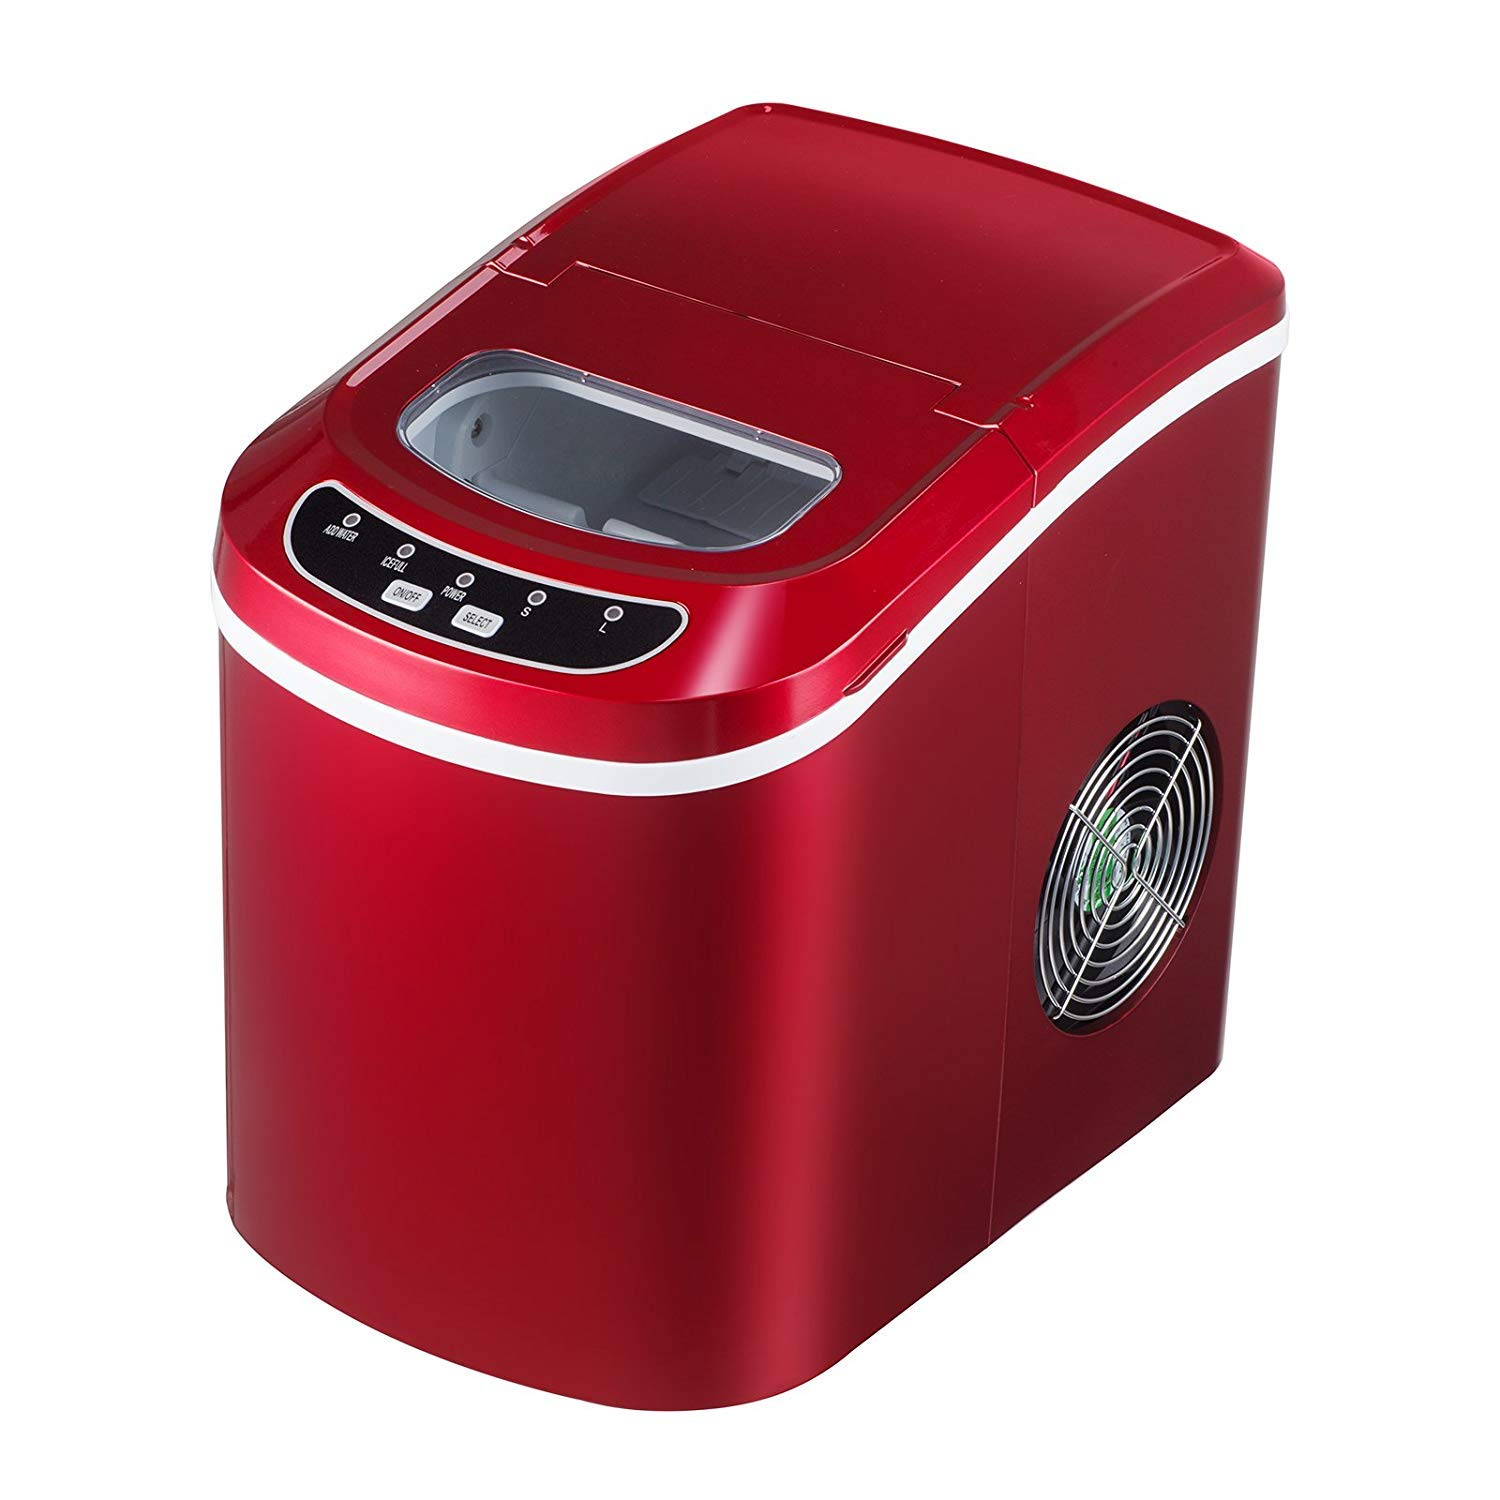 KUPPET Portable Ice Maker Countertop with 26lbs Daily Capacity, 9 Ice Cubes Ready in 8 Minutes,Ice Cube Maker Machine